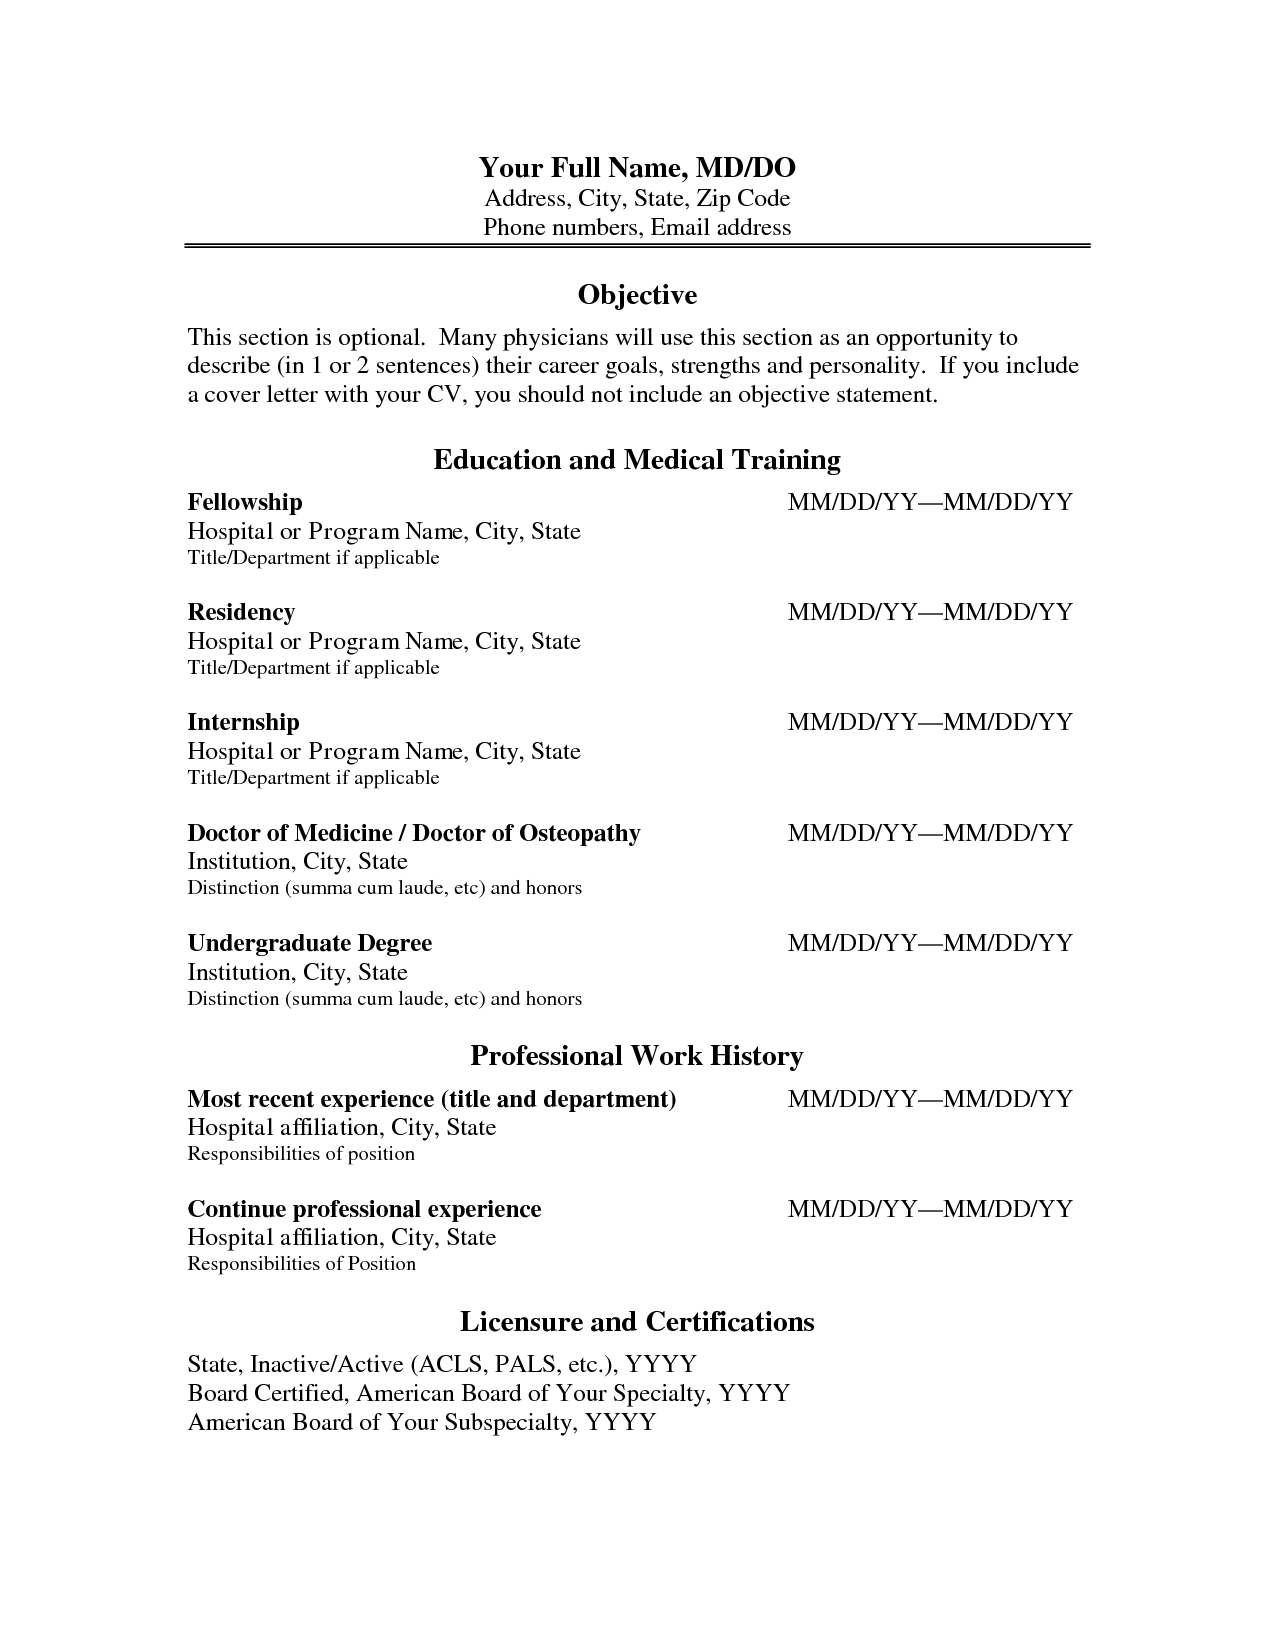 Resume Outline Examples Cv Format Physician Physician Assistant Resume And Curriculum